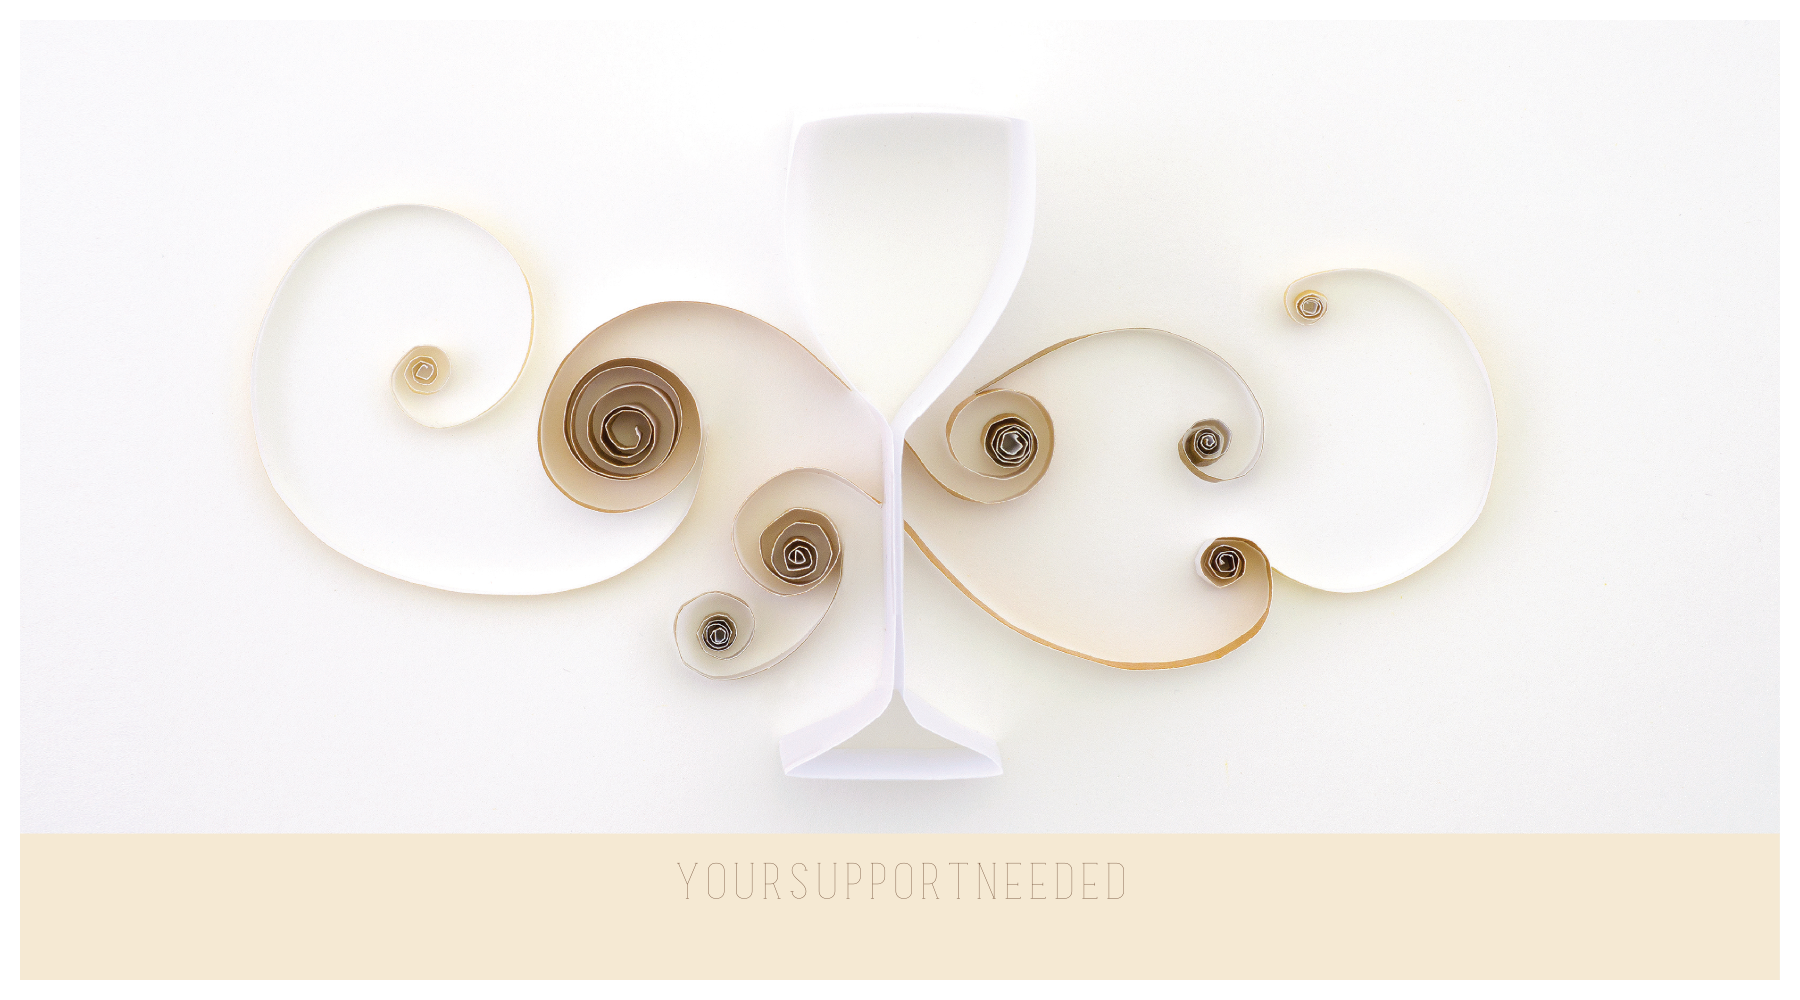 Customize Our Quilling Wine Glass Postcard Design Template front - Postcards Maker